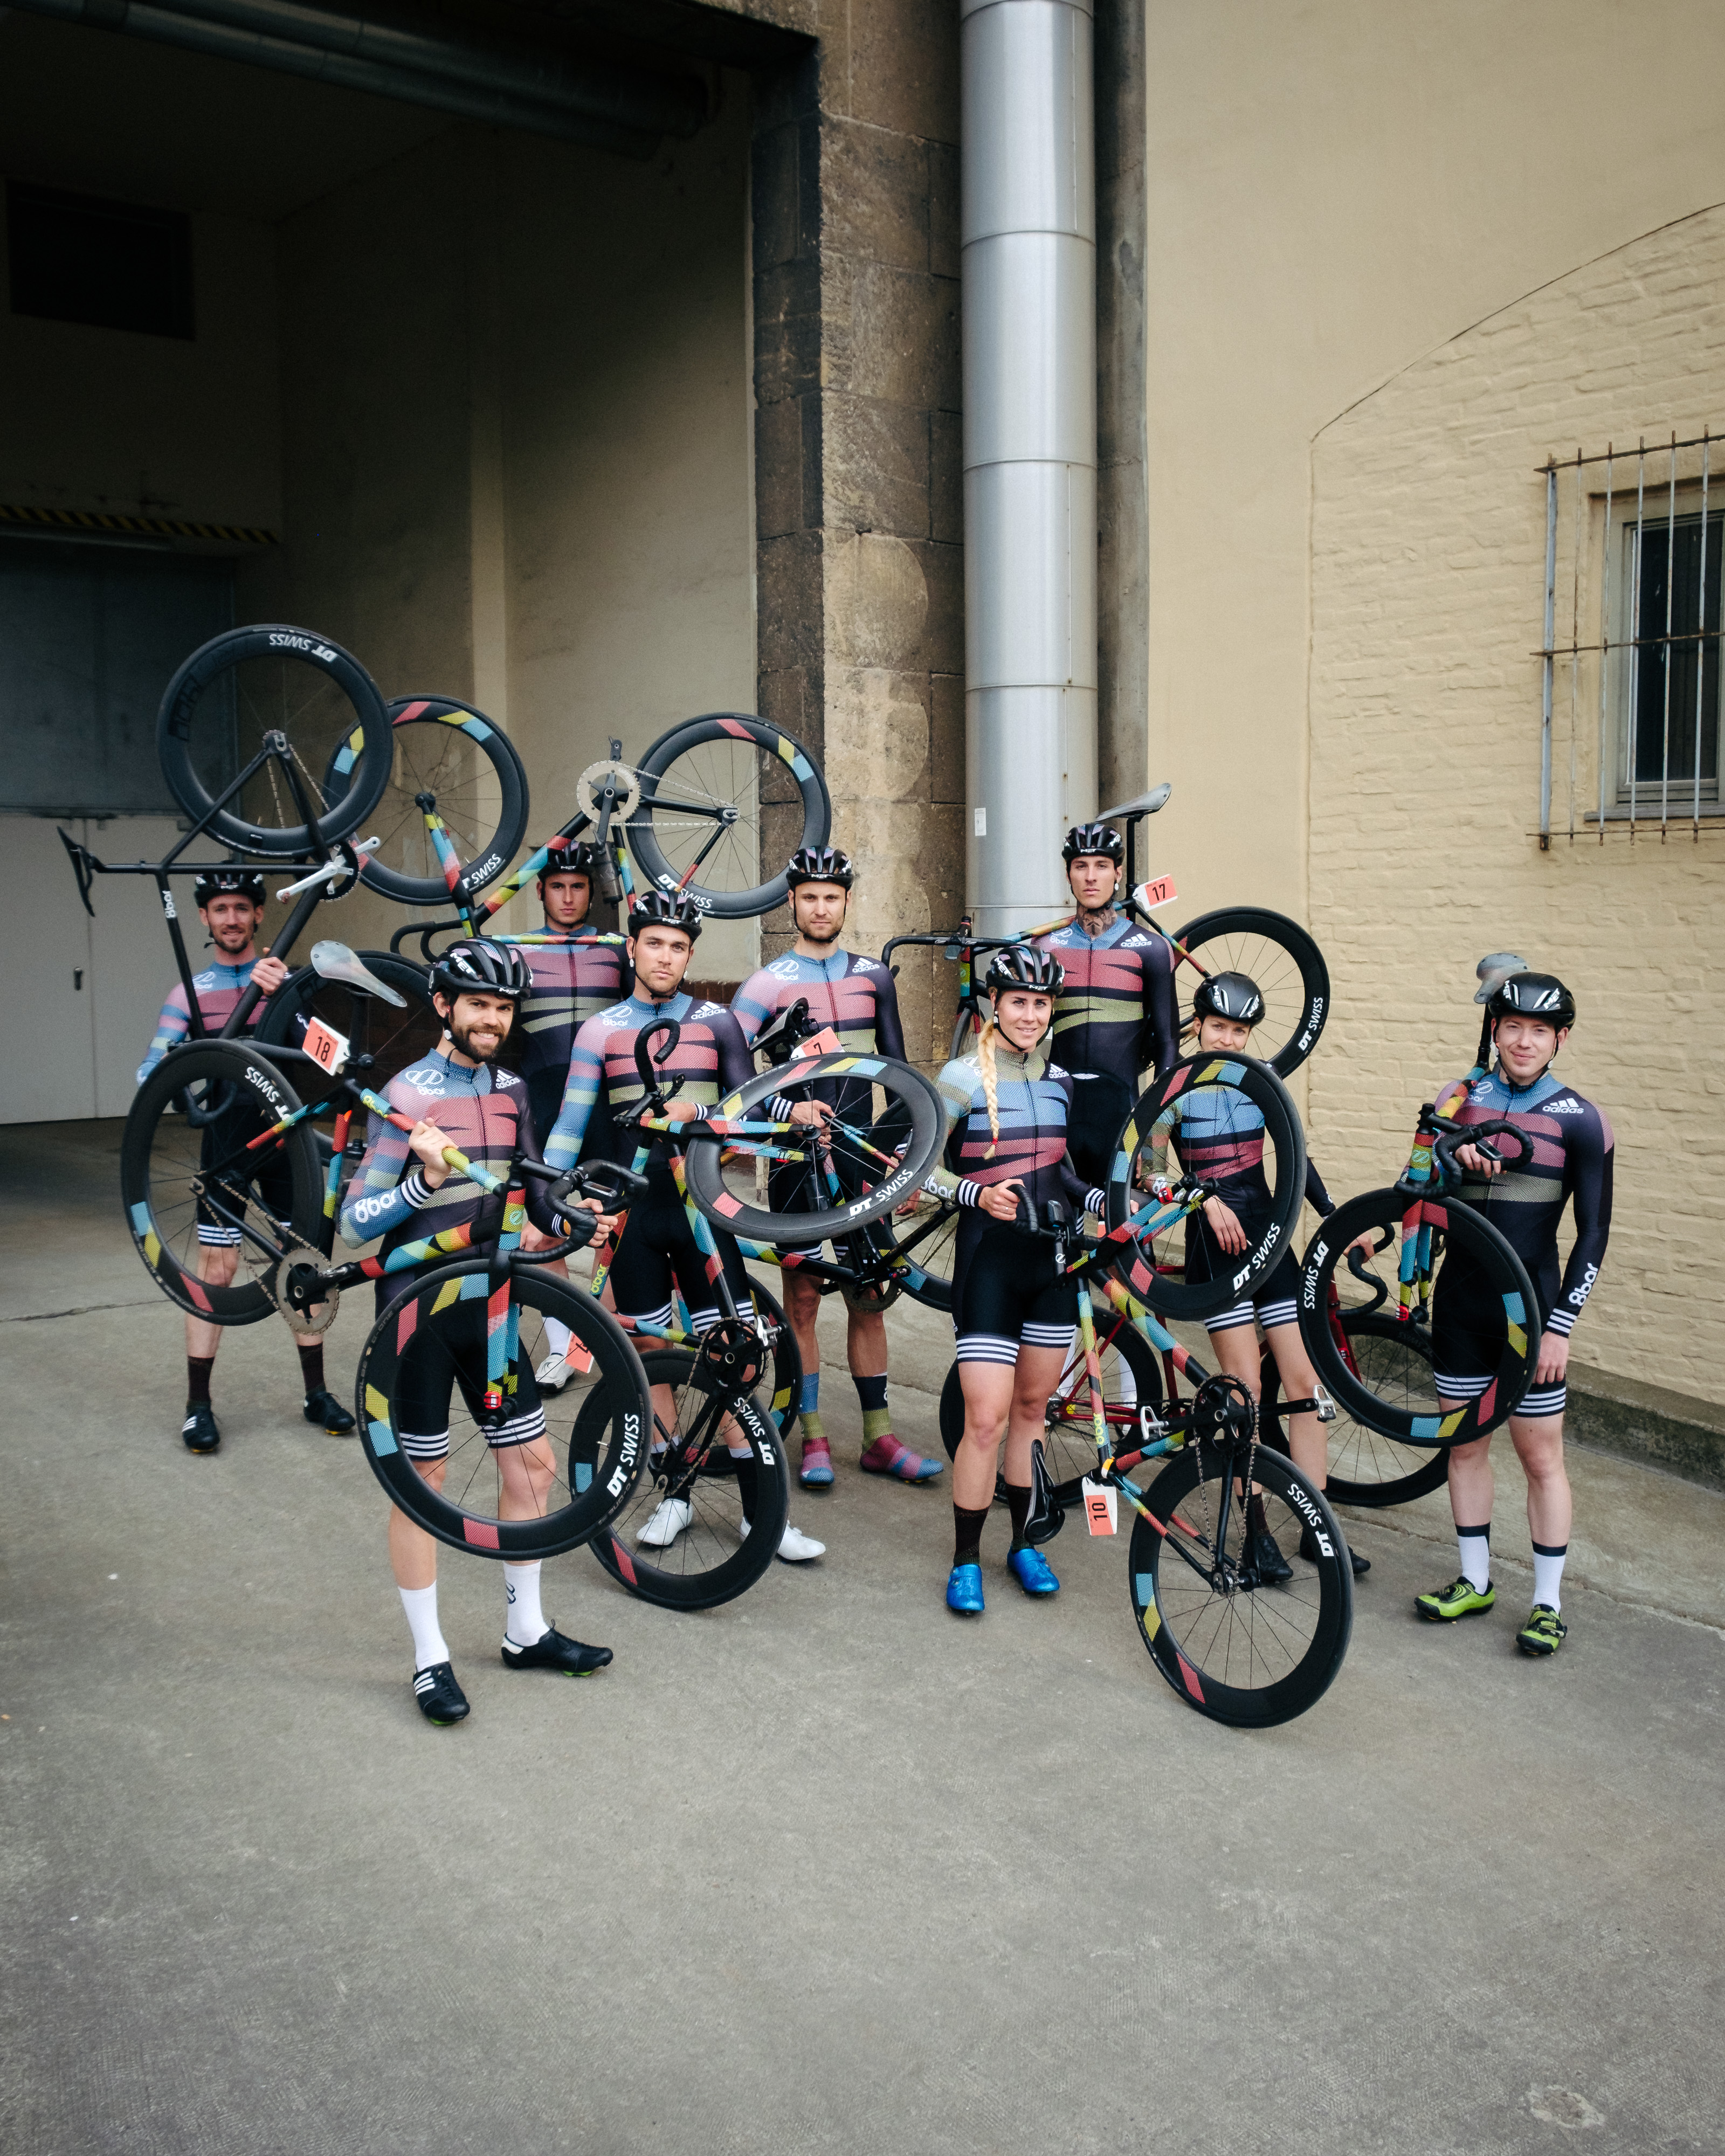 8bar-team-shooting-tmplhof-fixedgear-fixed-gear-fixie-joshua-meissner_hq-0002-190427